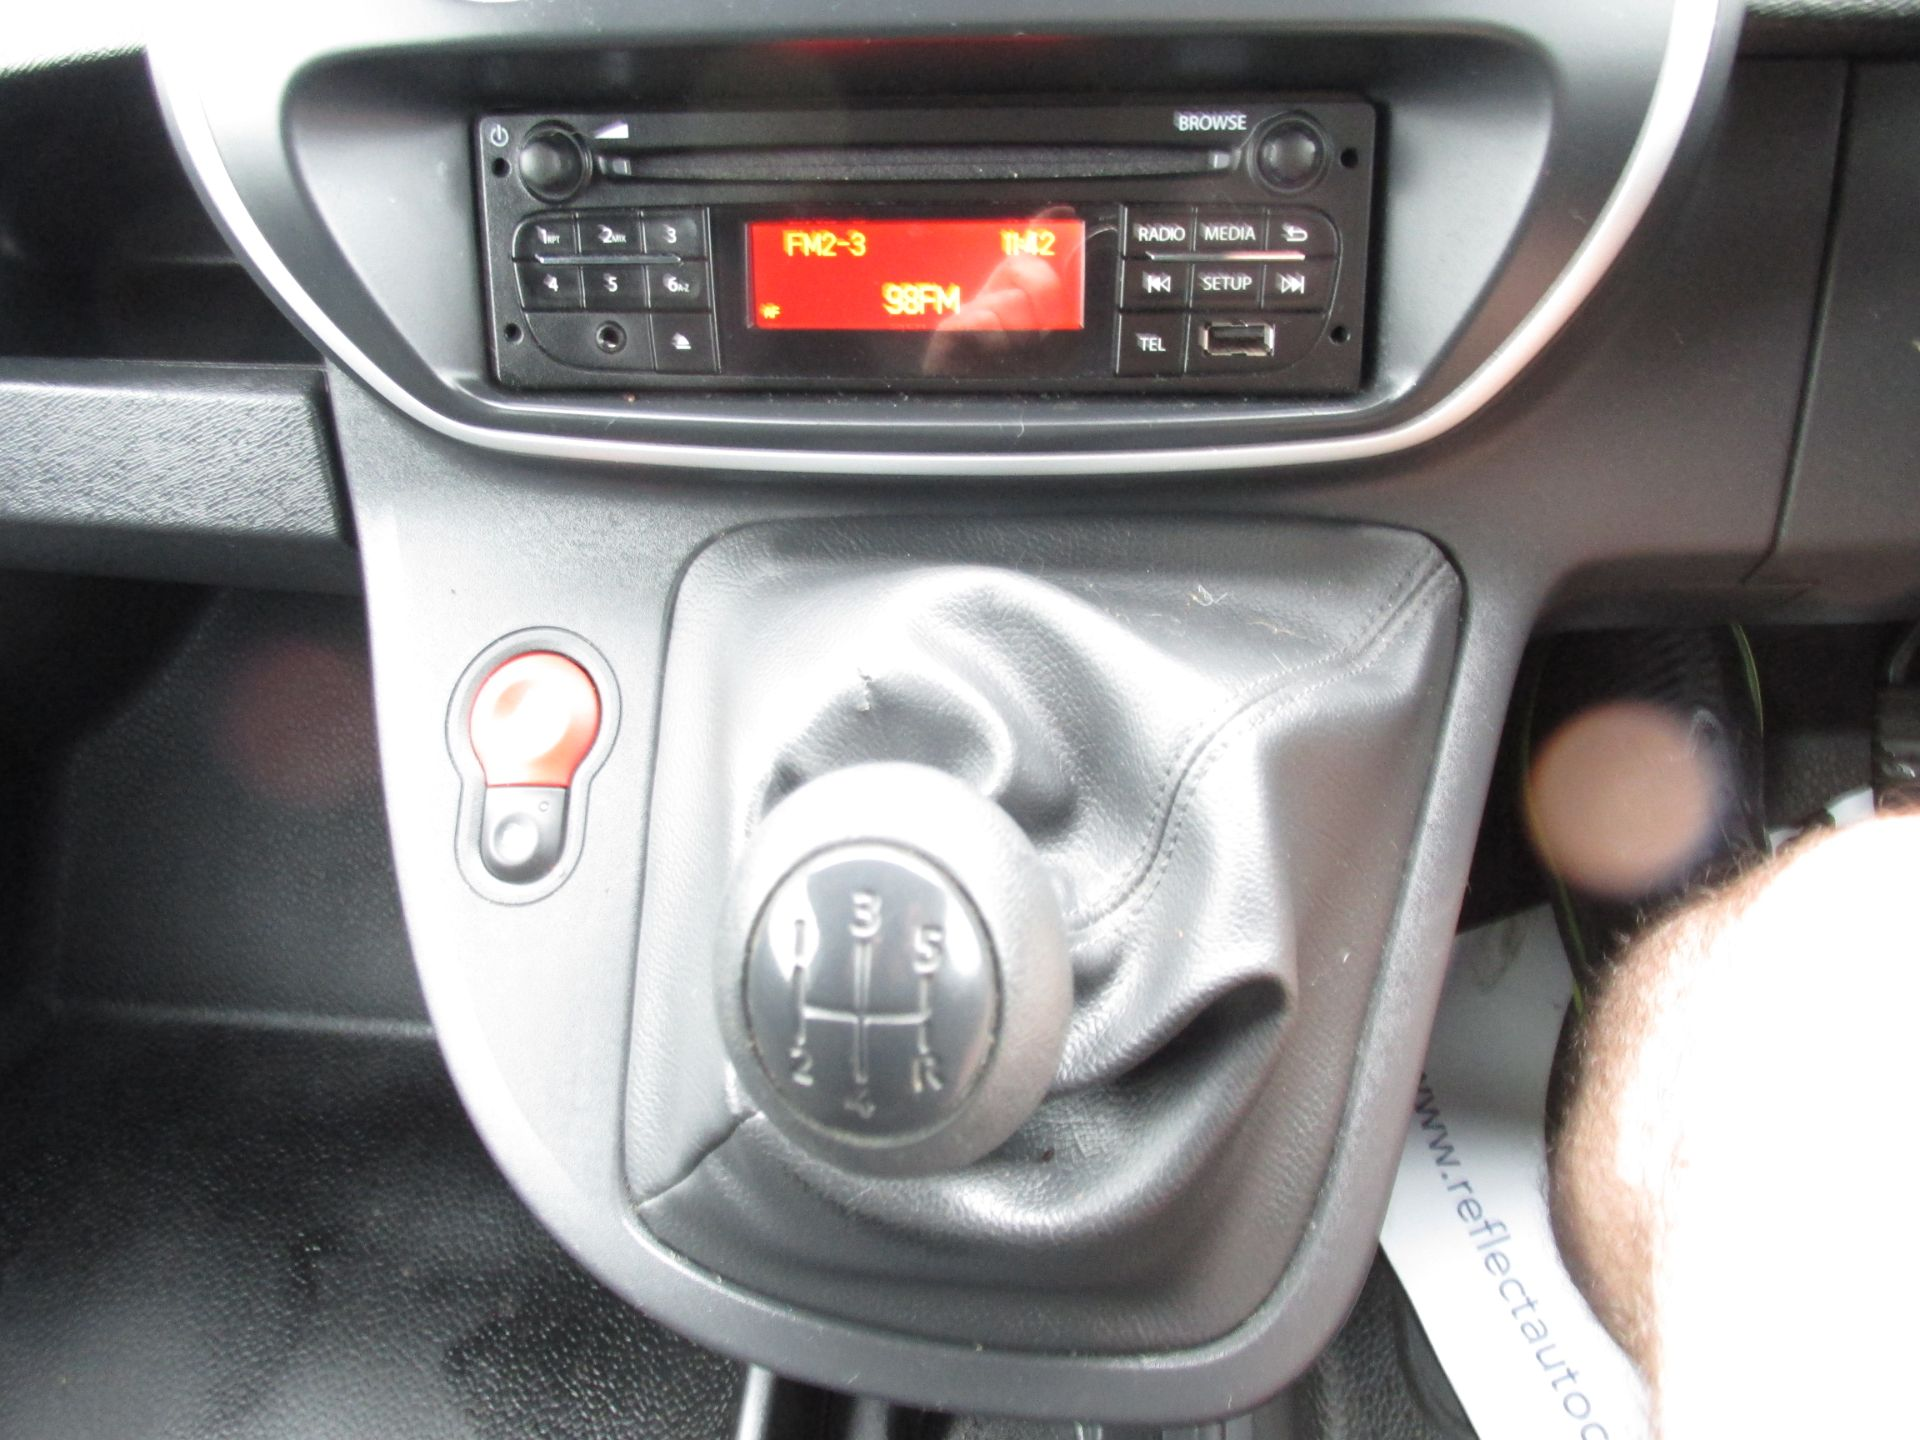 2017 Renault Kangoo ML19 Energy DCI 75 Business 2D click and collect call sales for more info (171D10568) Image 12